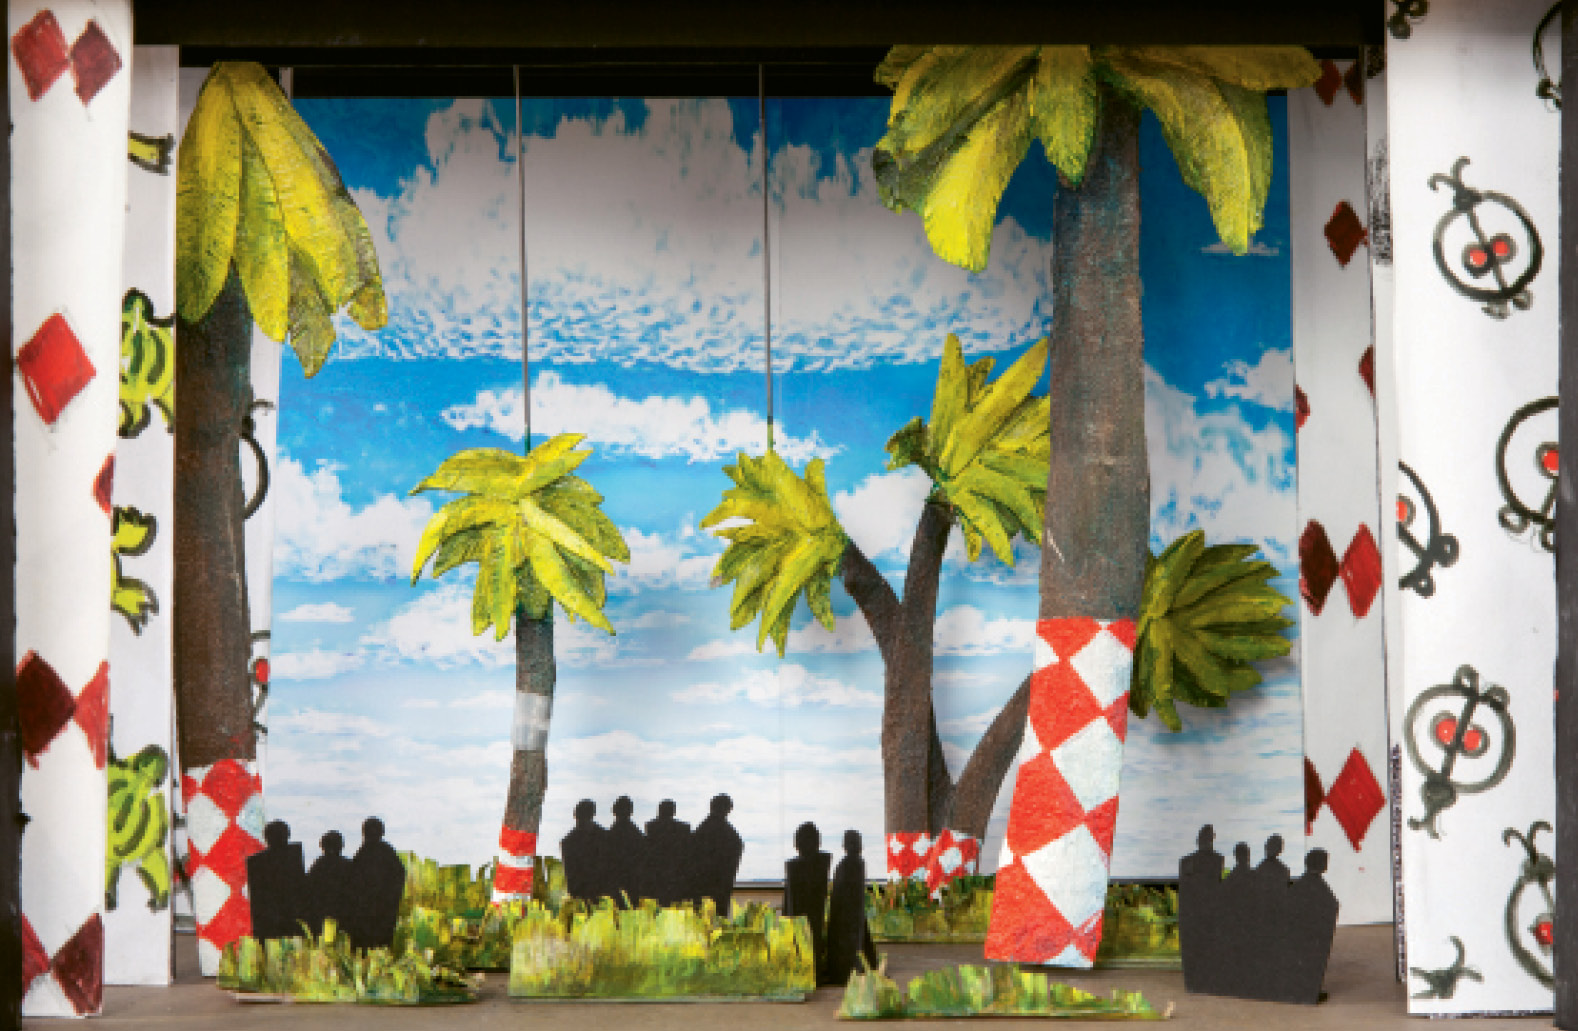 Act Two, Scene Two's Kittiwah Island continues Green's vibrant aesthetic